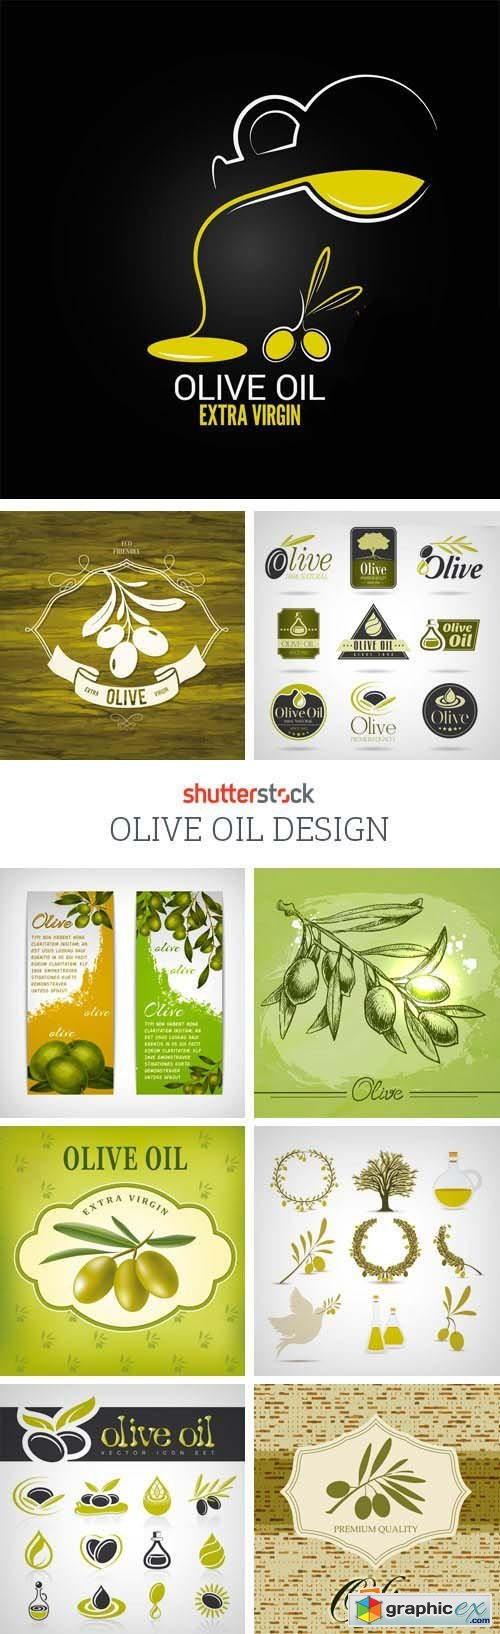 Amazing SS - Olive Oil Design, 25xEPS